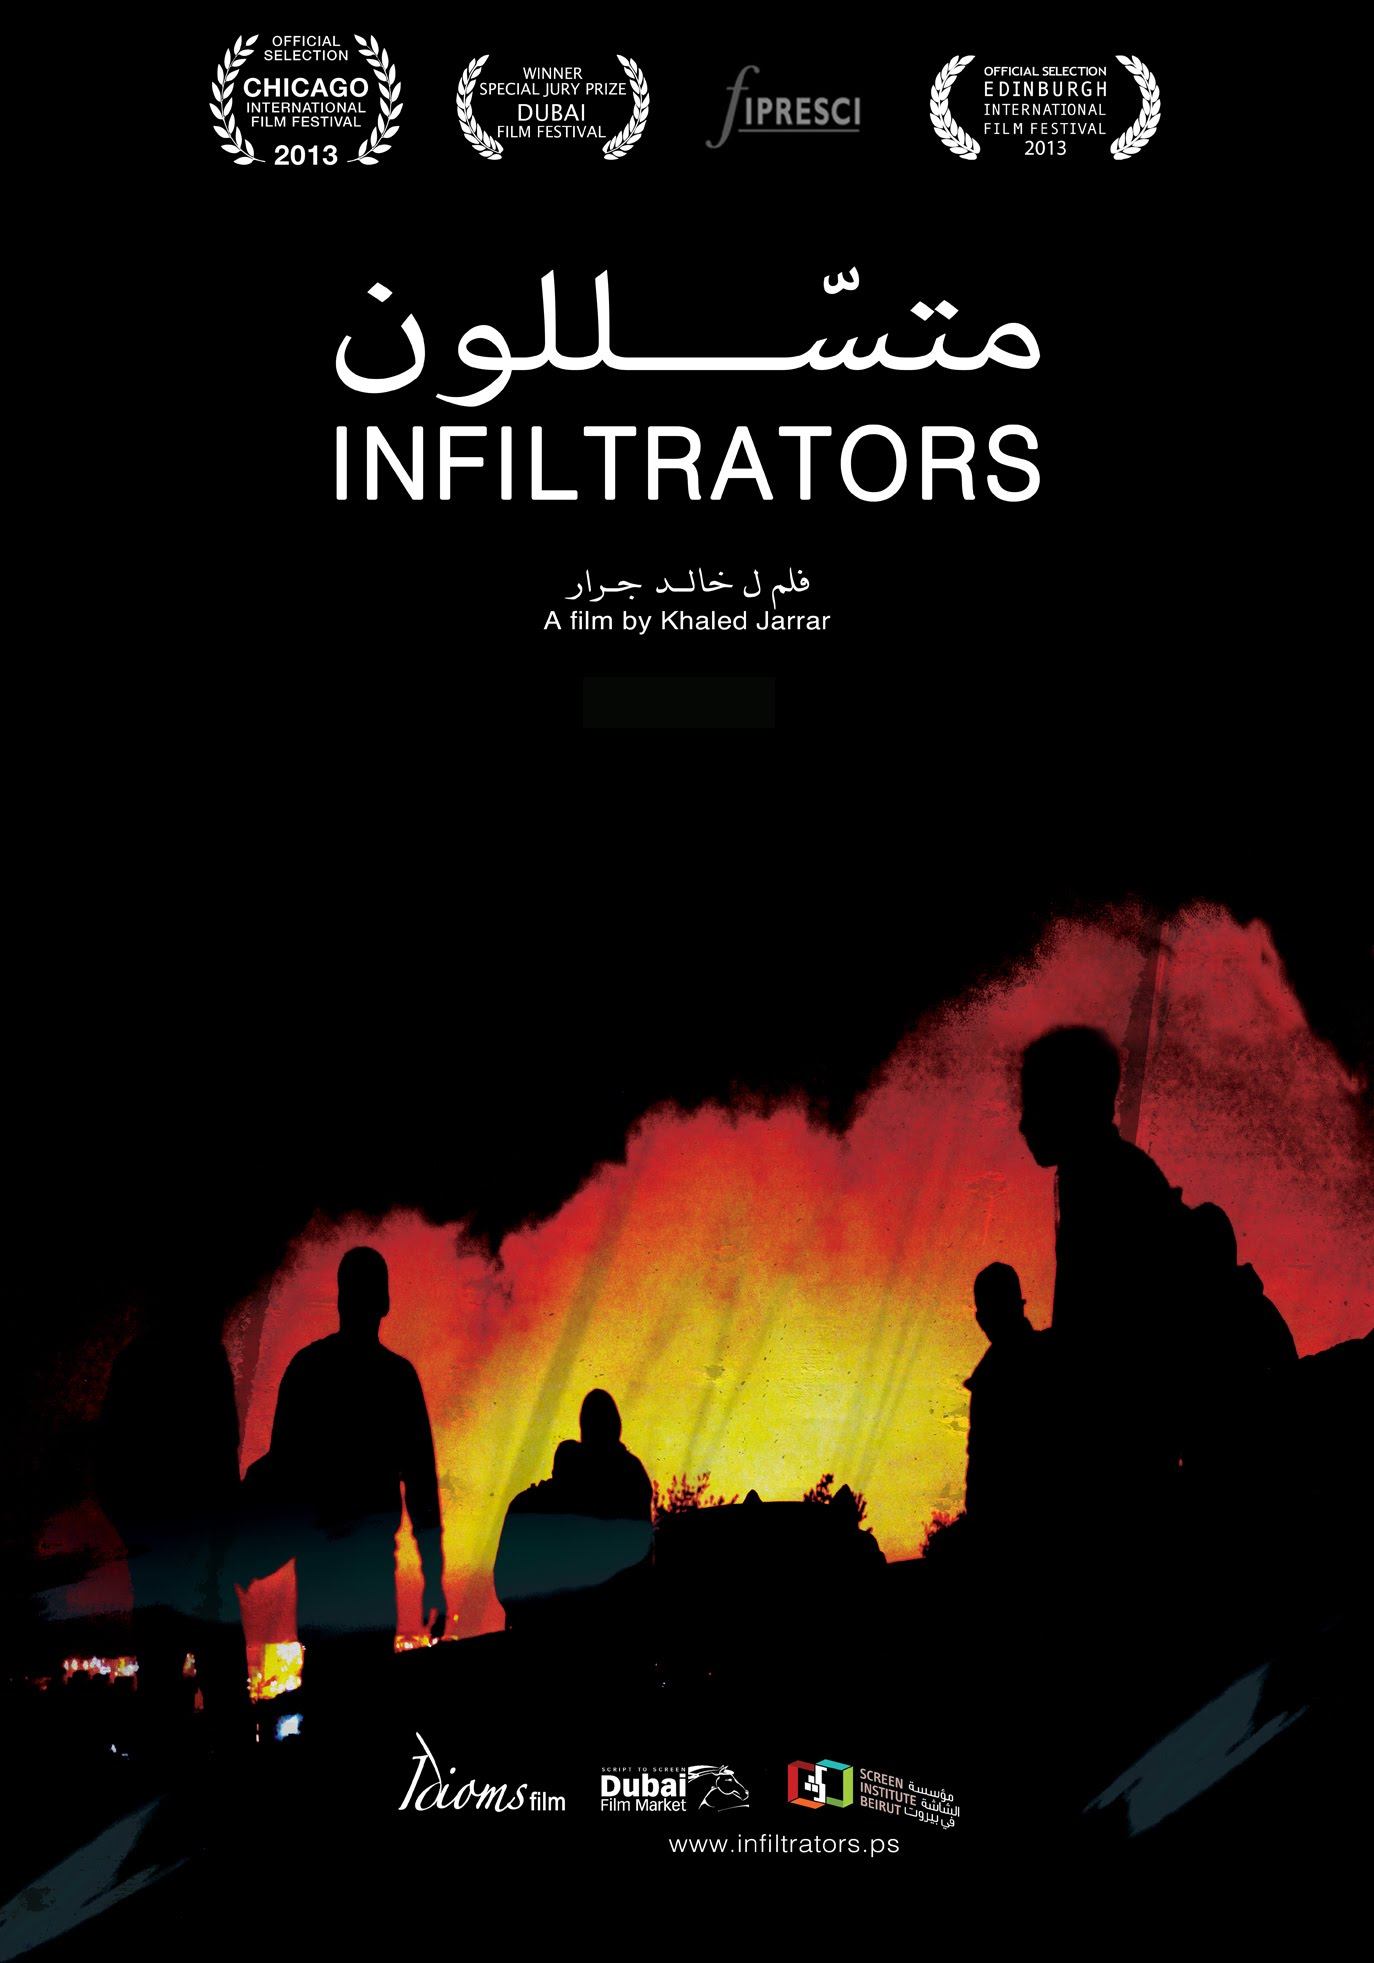 Infiltrators - Film Trailer